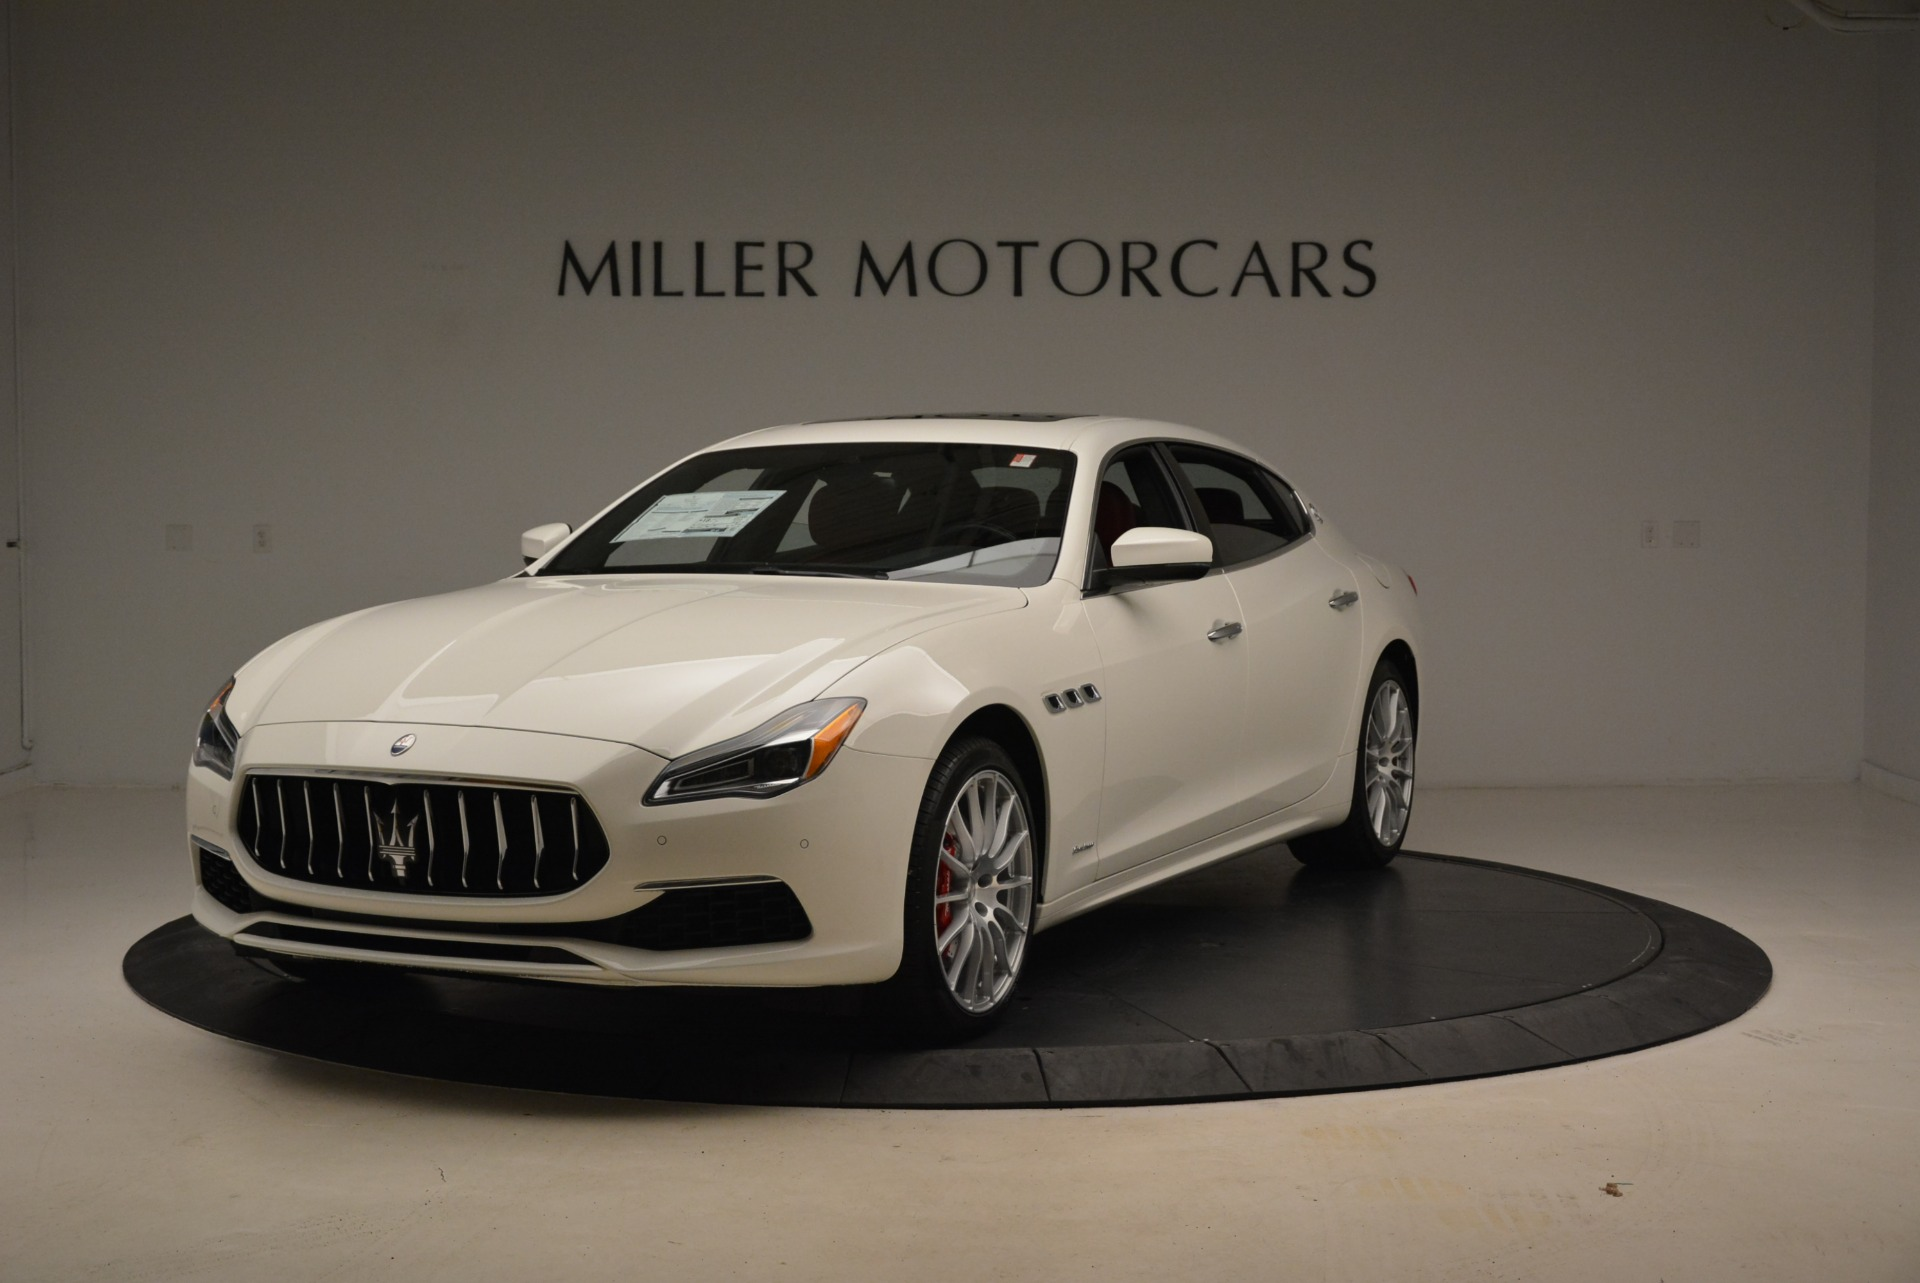 New 2018 Maserati Quattroporte S Q4 GranLusso for sale Sold at Pagani of Greenwich in Greenwich CT 06830 1